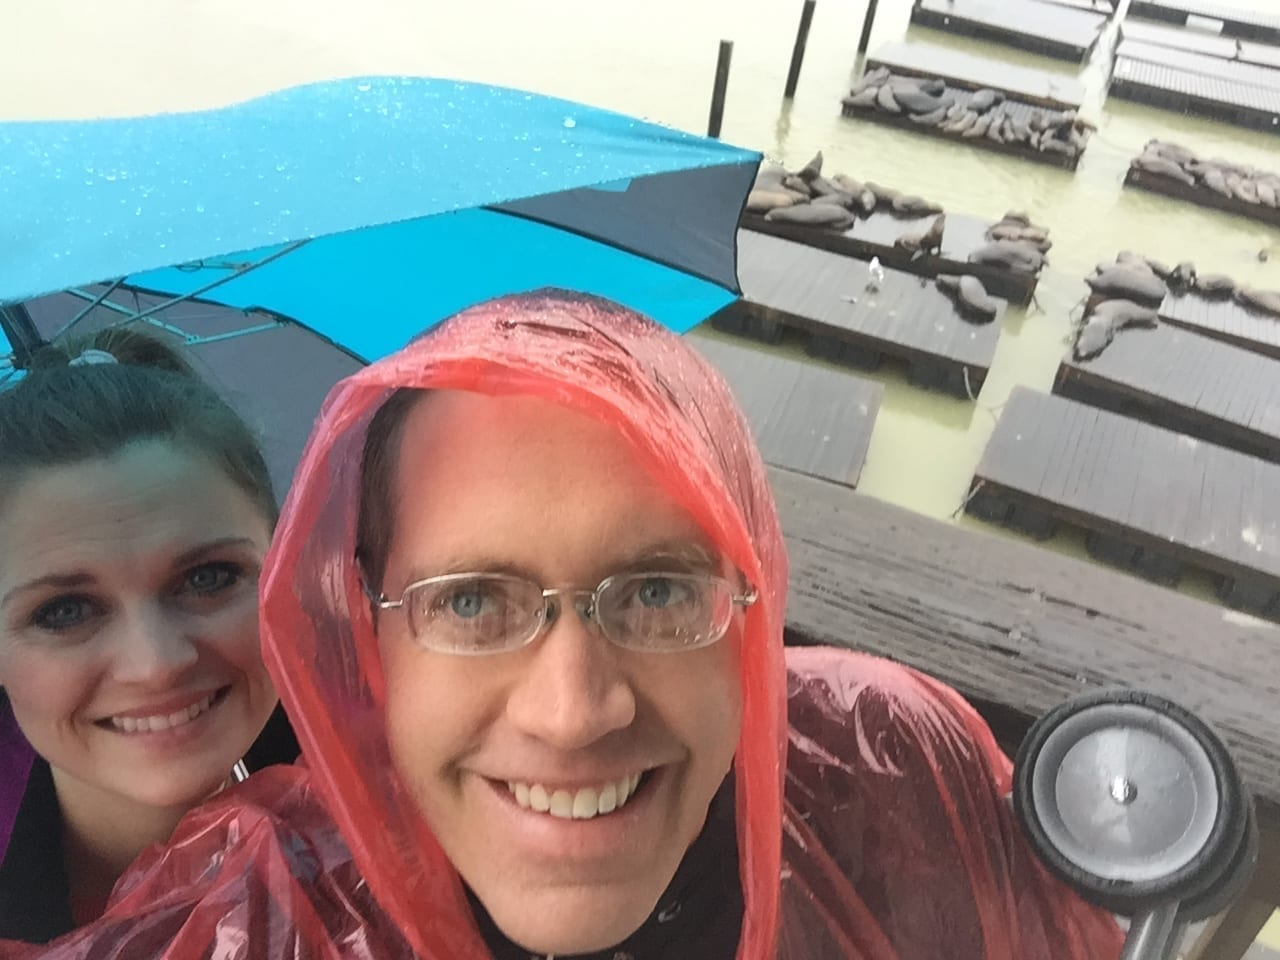 Things to do in San Francisco when it rains